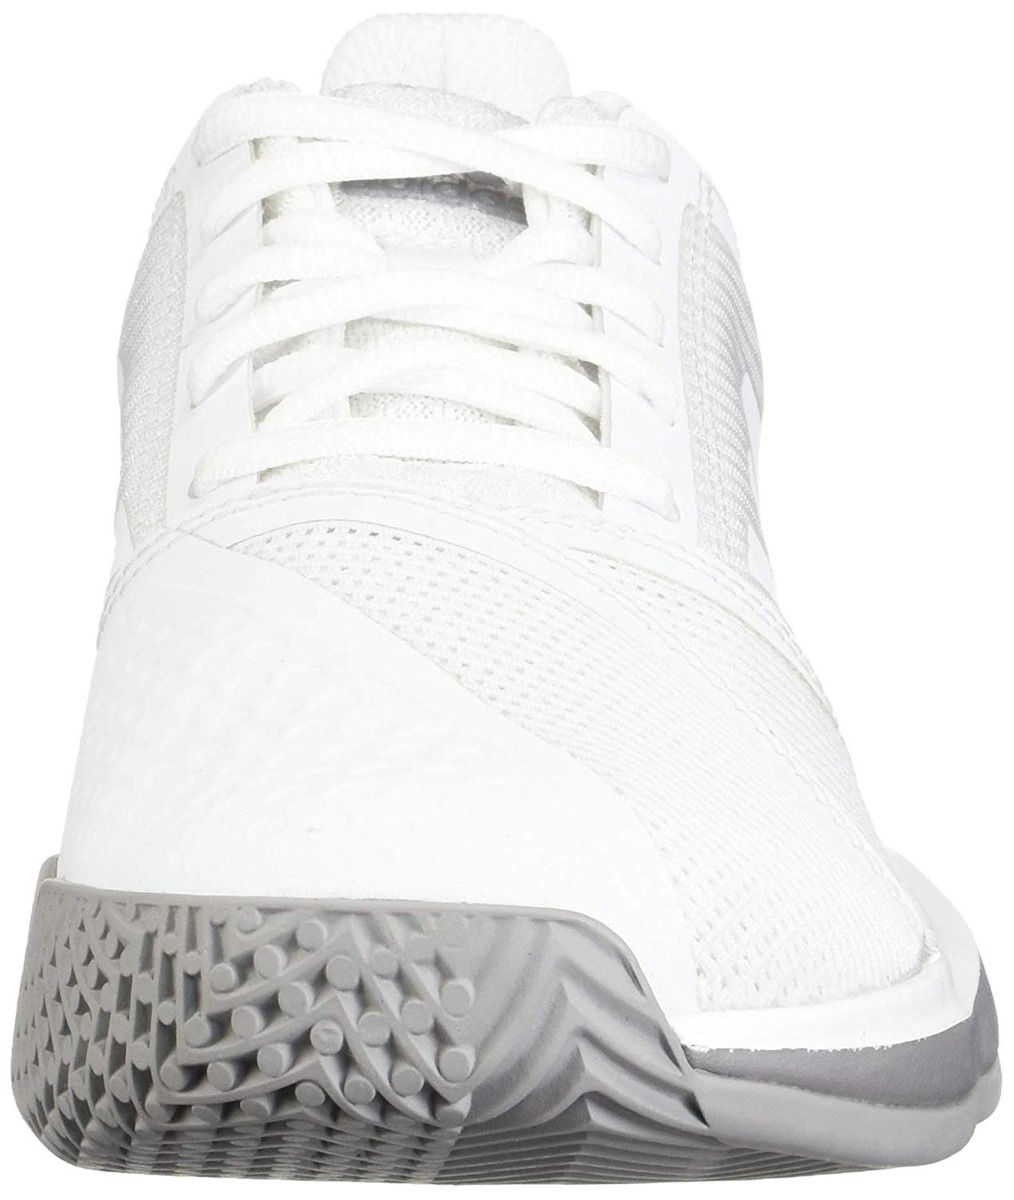 adidas CourtJam Bounce at